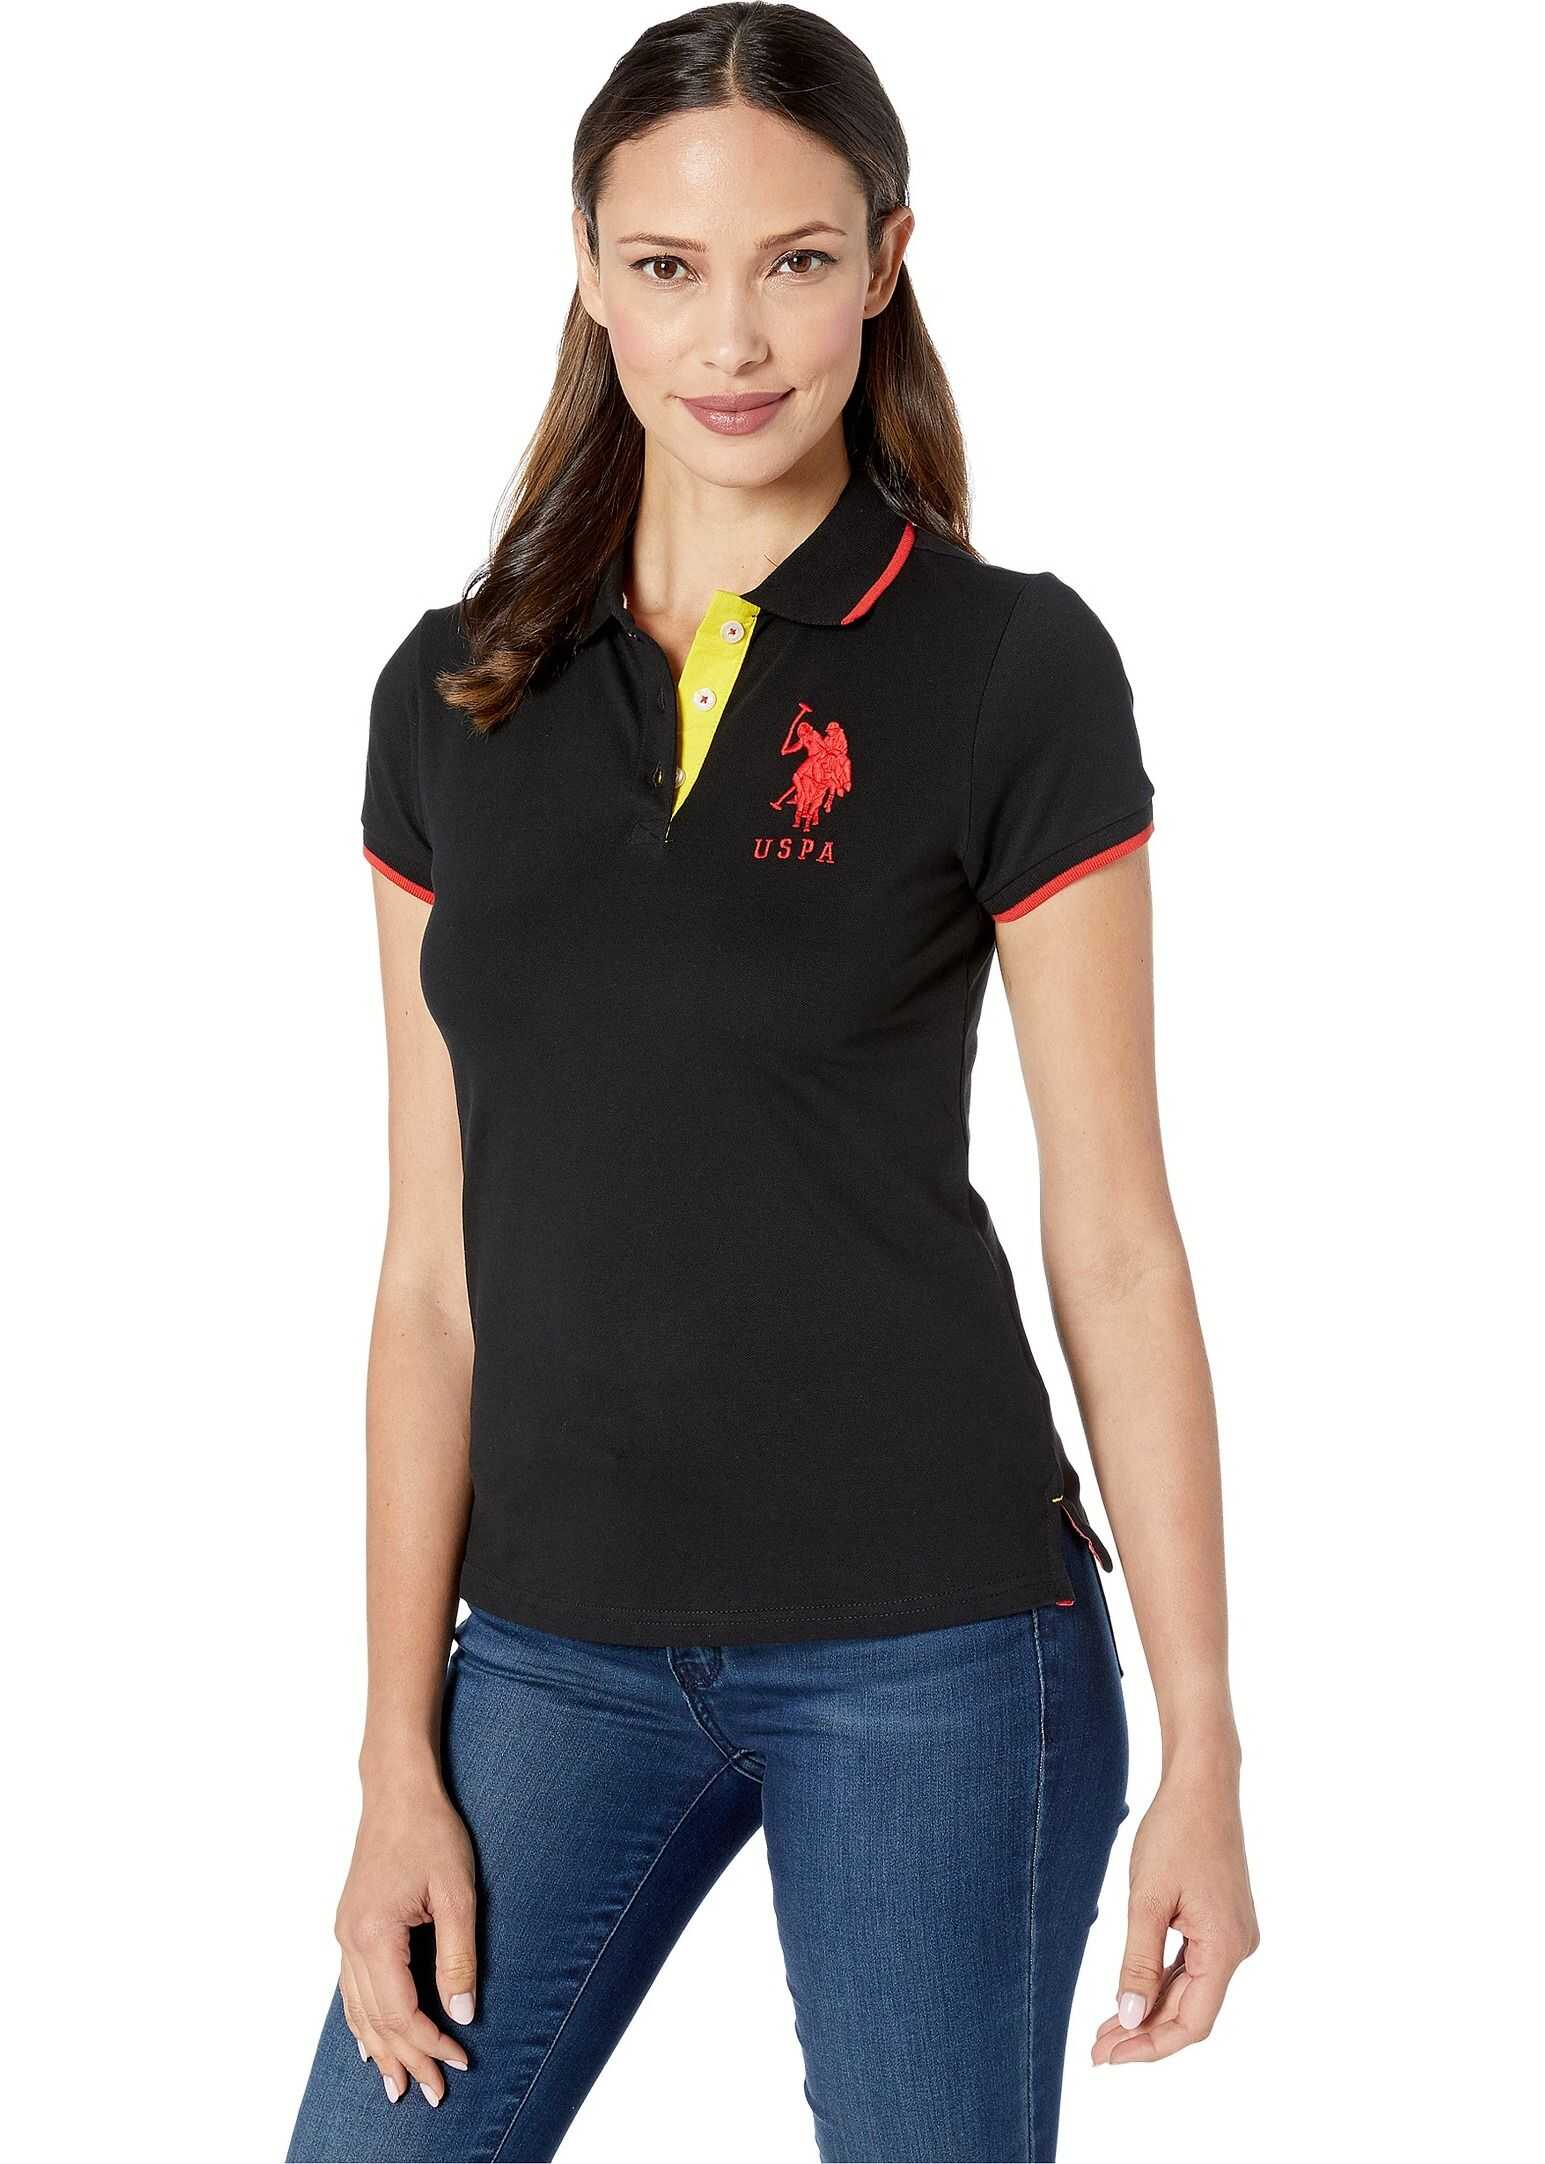 U.S. POLO ASSN. Triple Crown Polo New Black